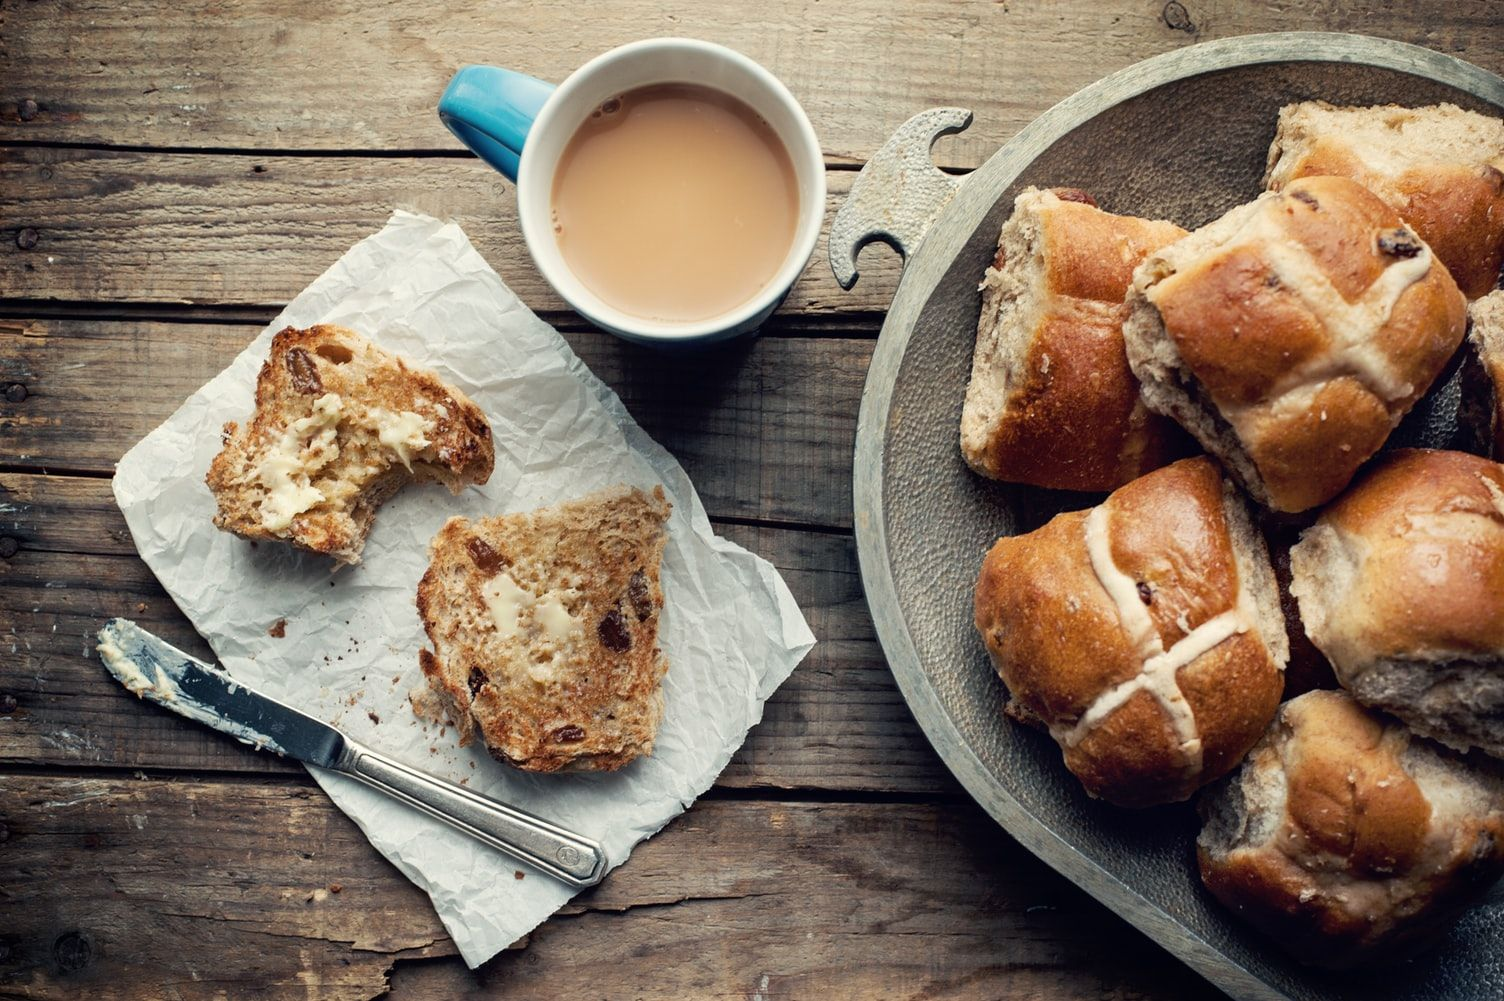 Hot cross buns and cup of tea